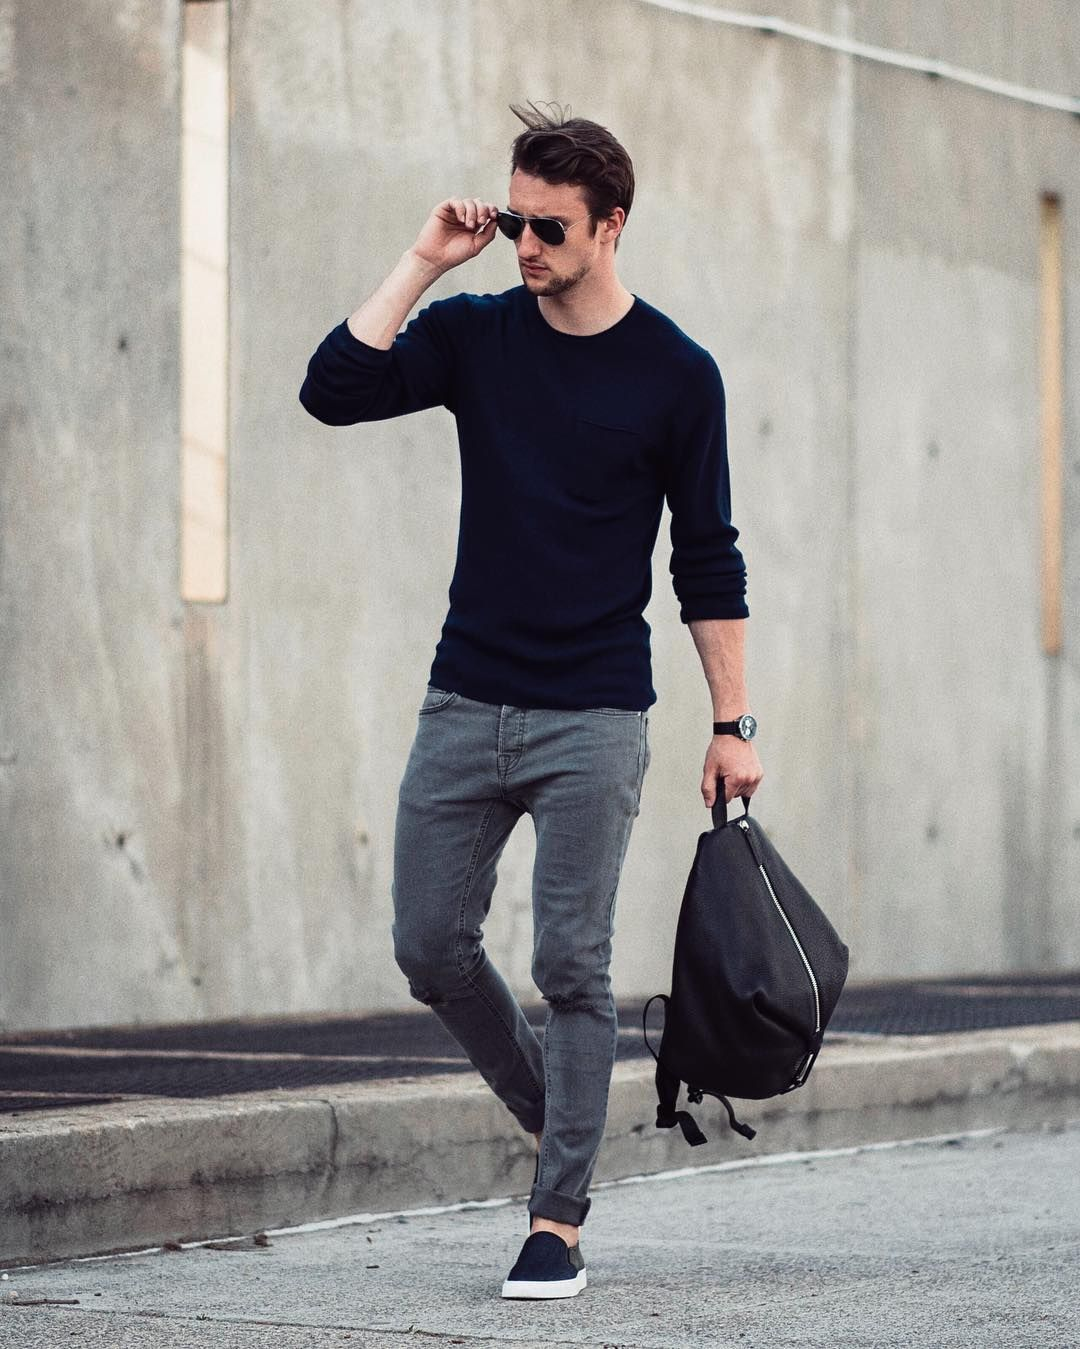 5 Outfits That Will Make You Look Way Cooler Pinterest Men 39 S Fashion Street Styles And Street